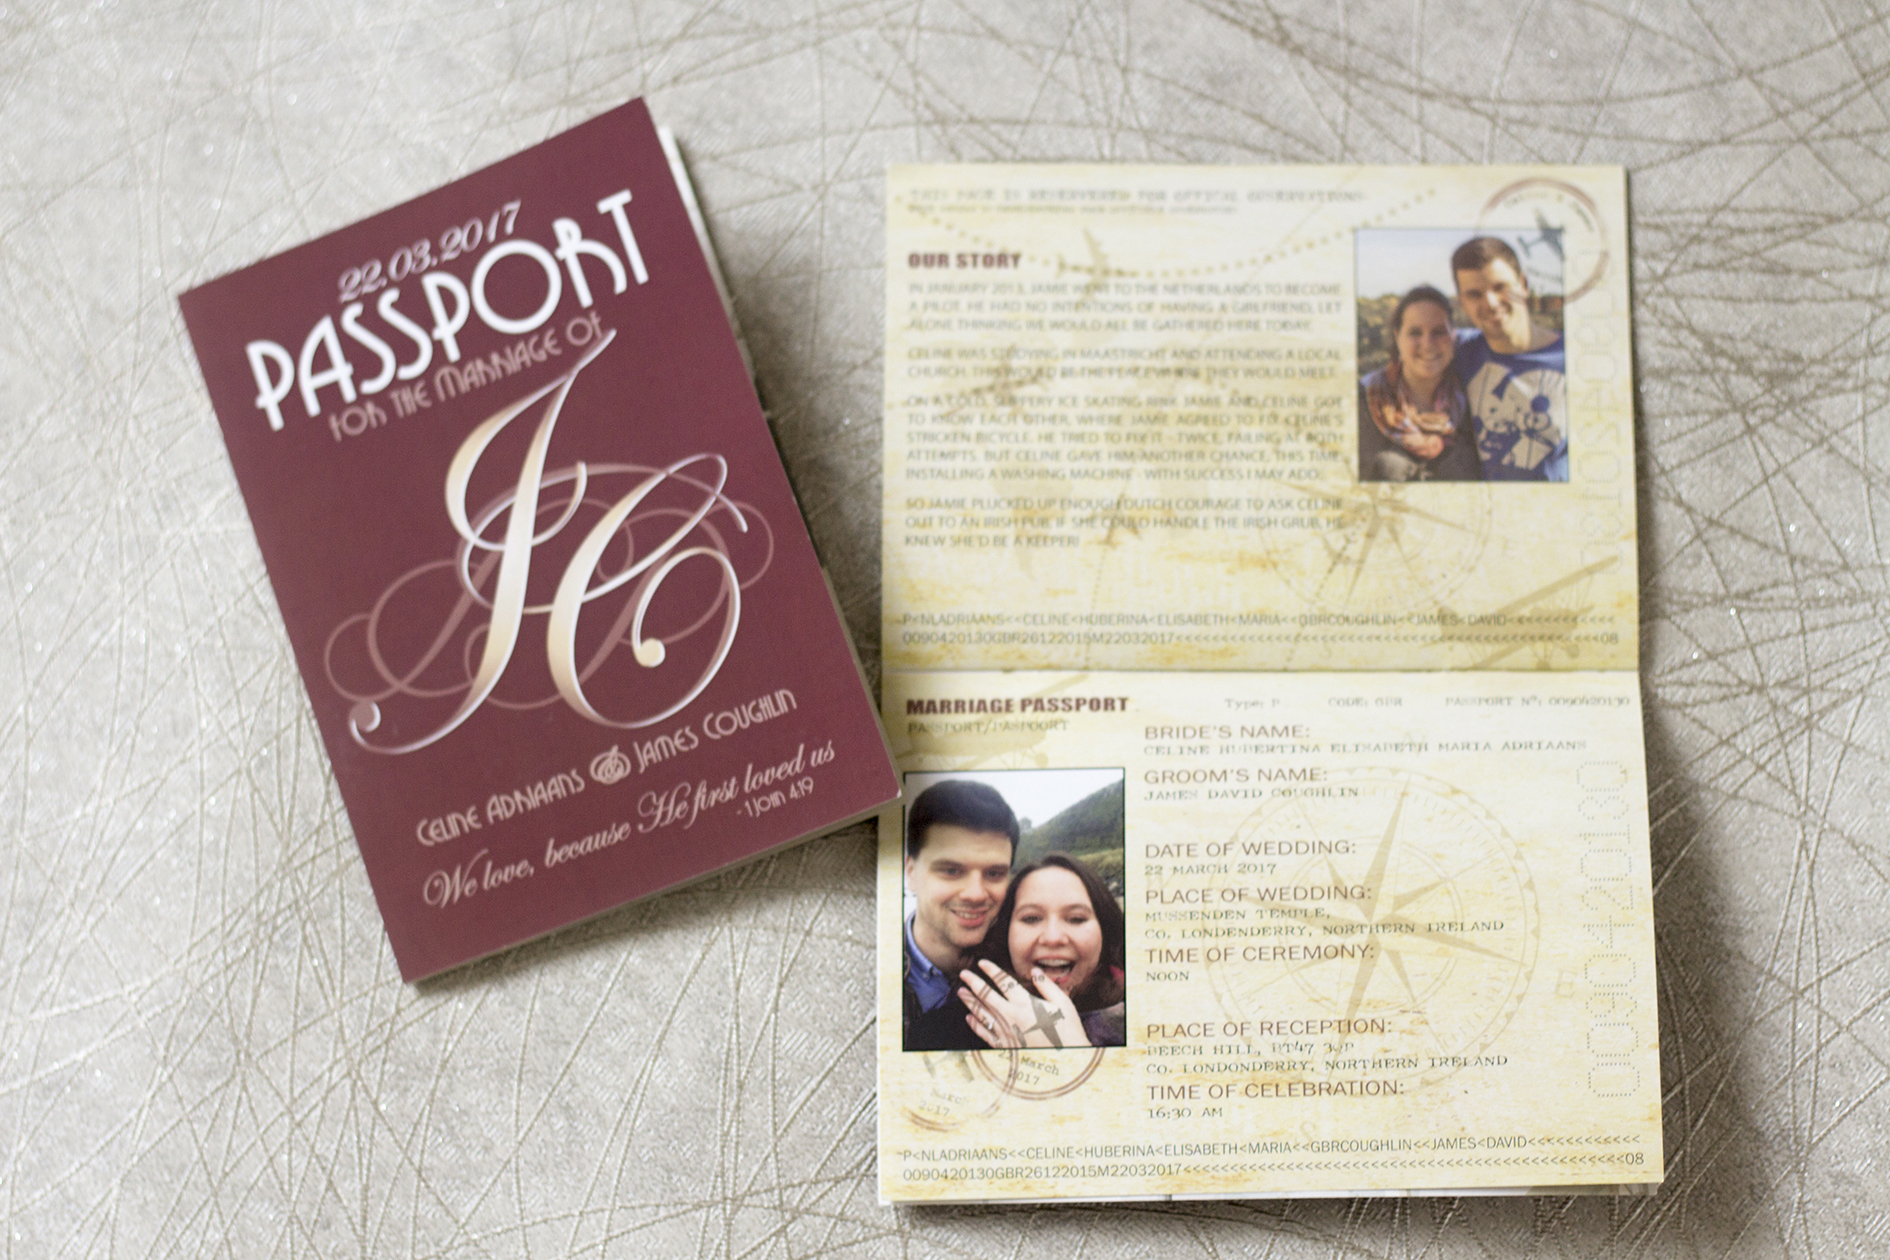 How to address wedding invitations & etiquette - Forevermore ...